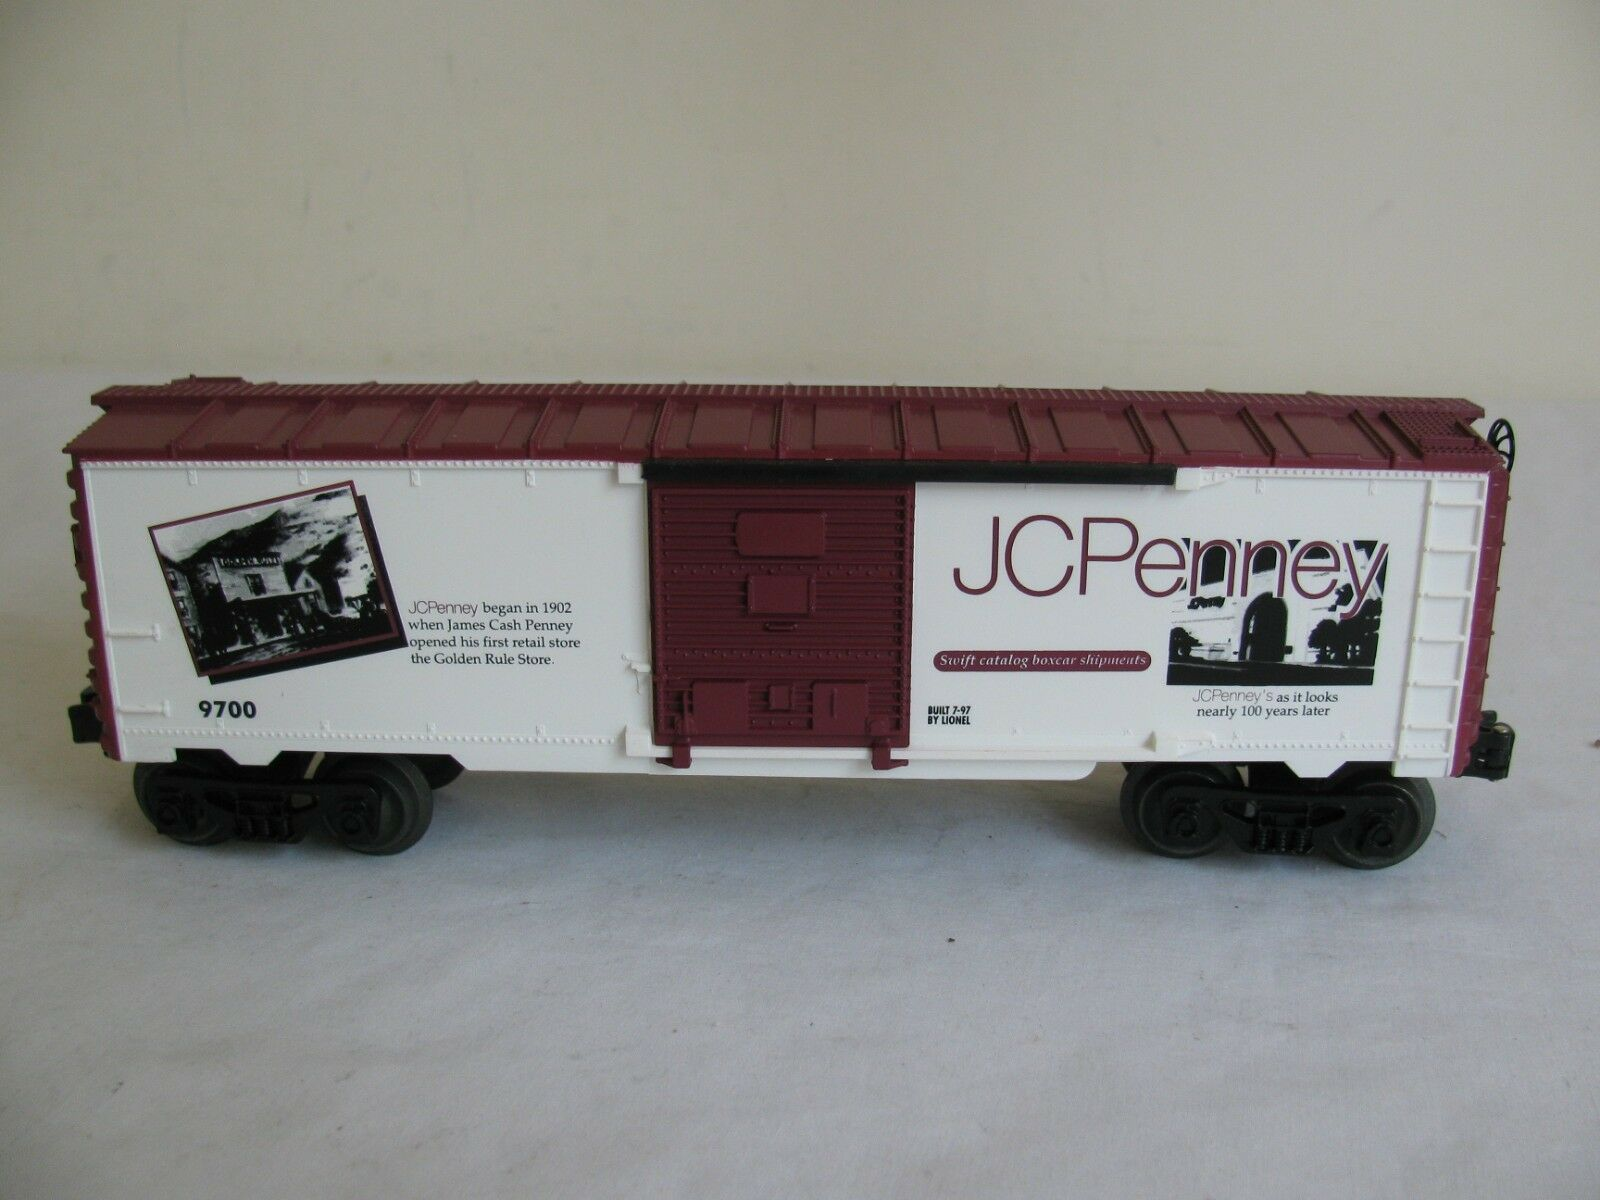 Vintage Lionel Trains O/O-27 Scale JCPenney Special Box Car  6-11832 EX